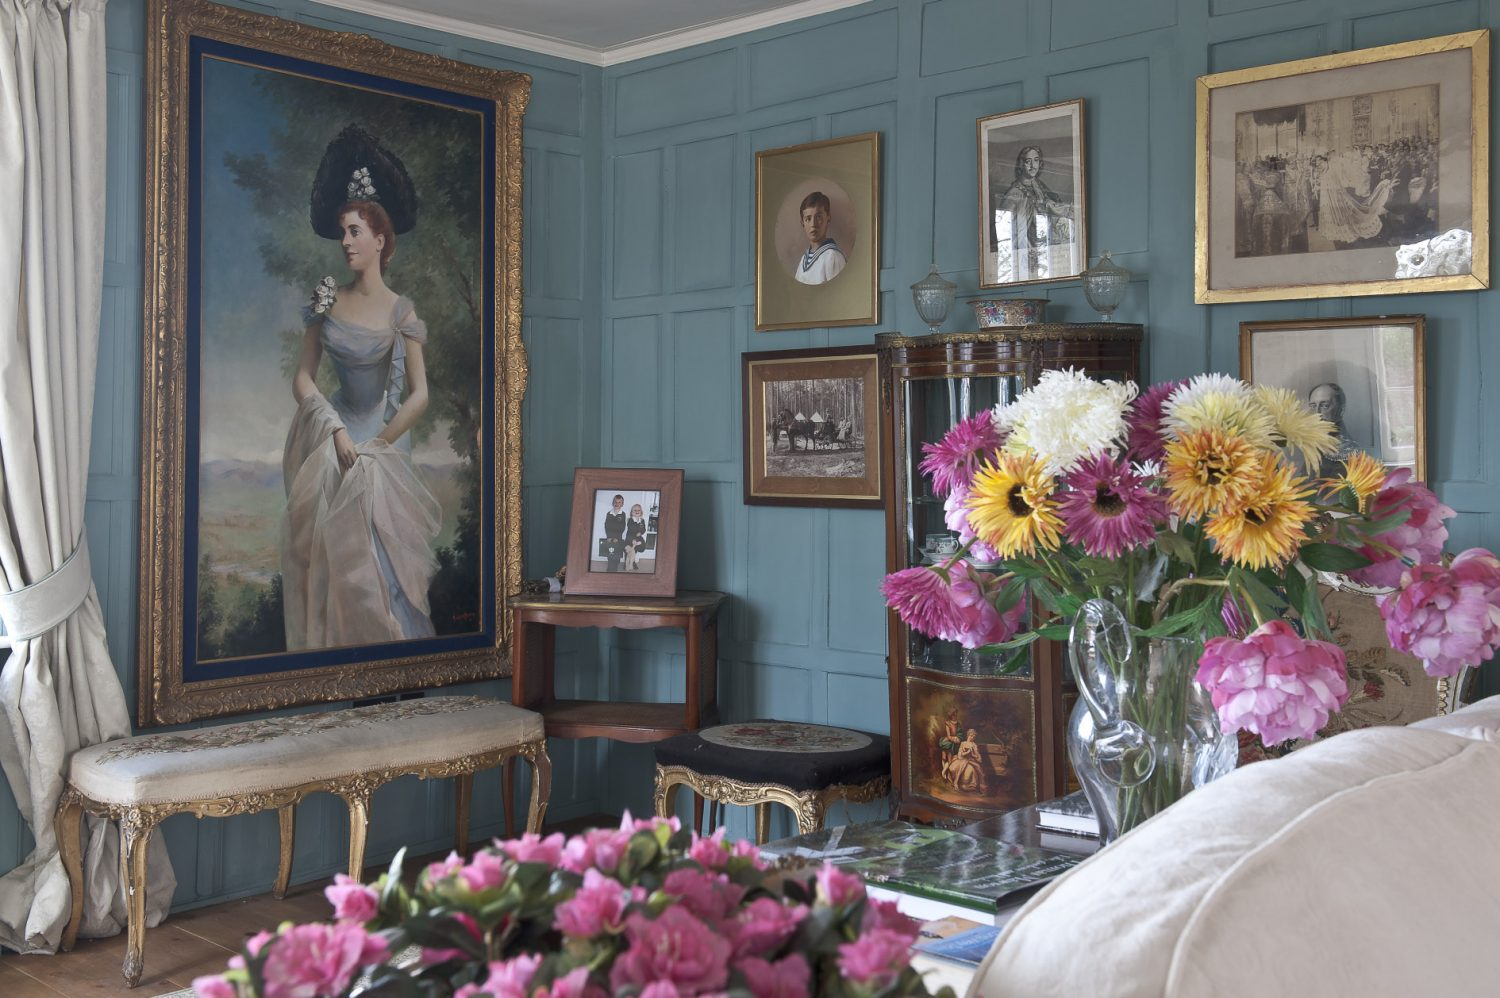 The panelled walls of the drawing room have been painted ballroom blue which perfectly offsets the gilt framed portraits around the room